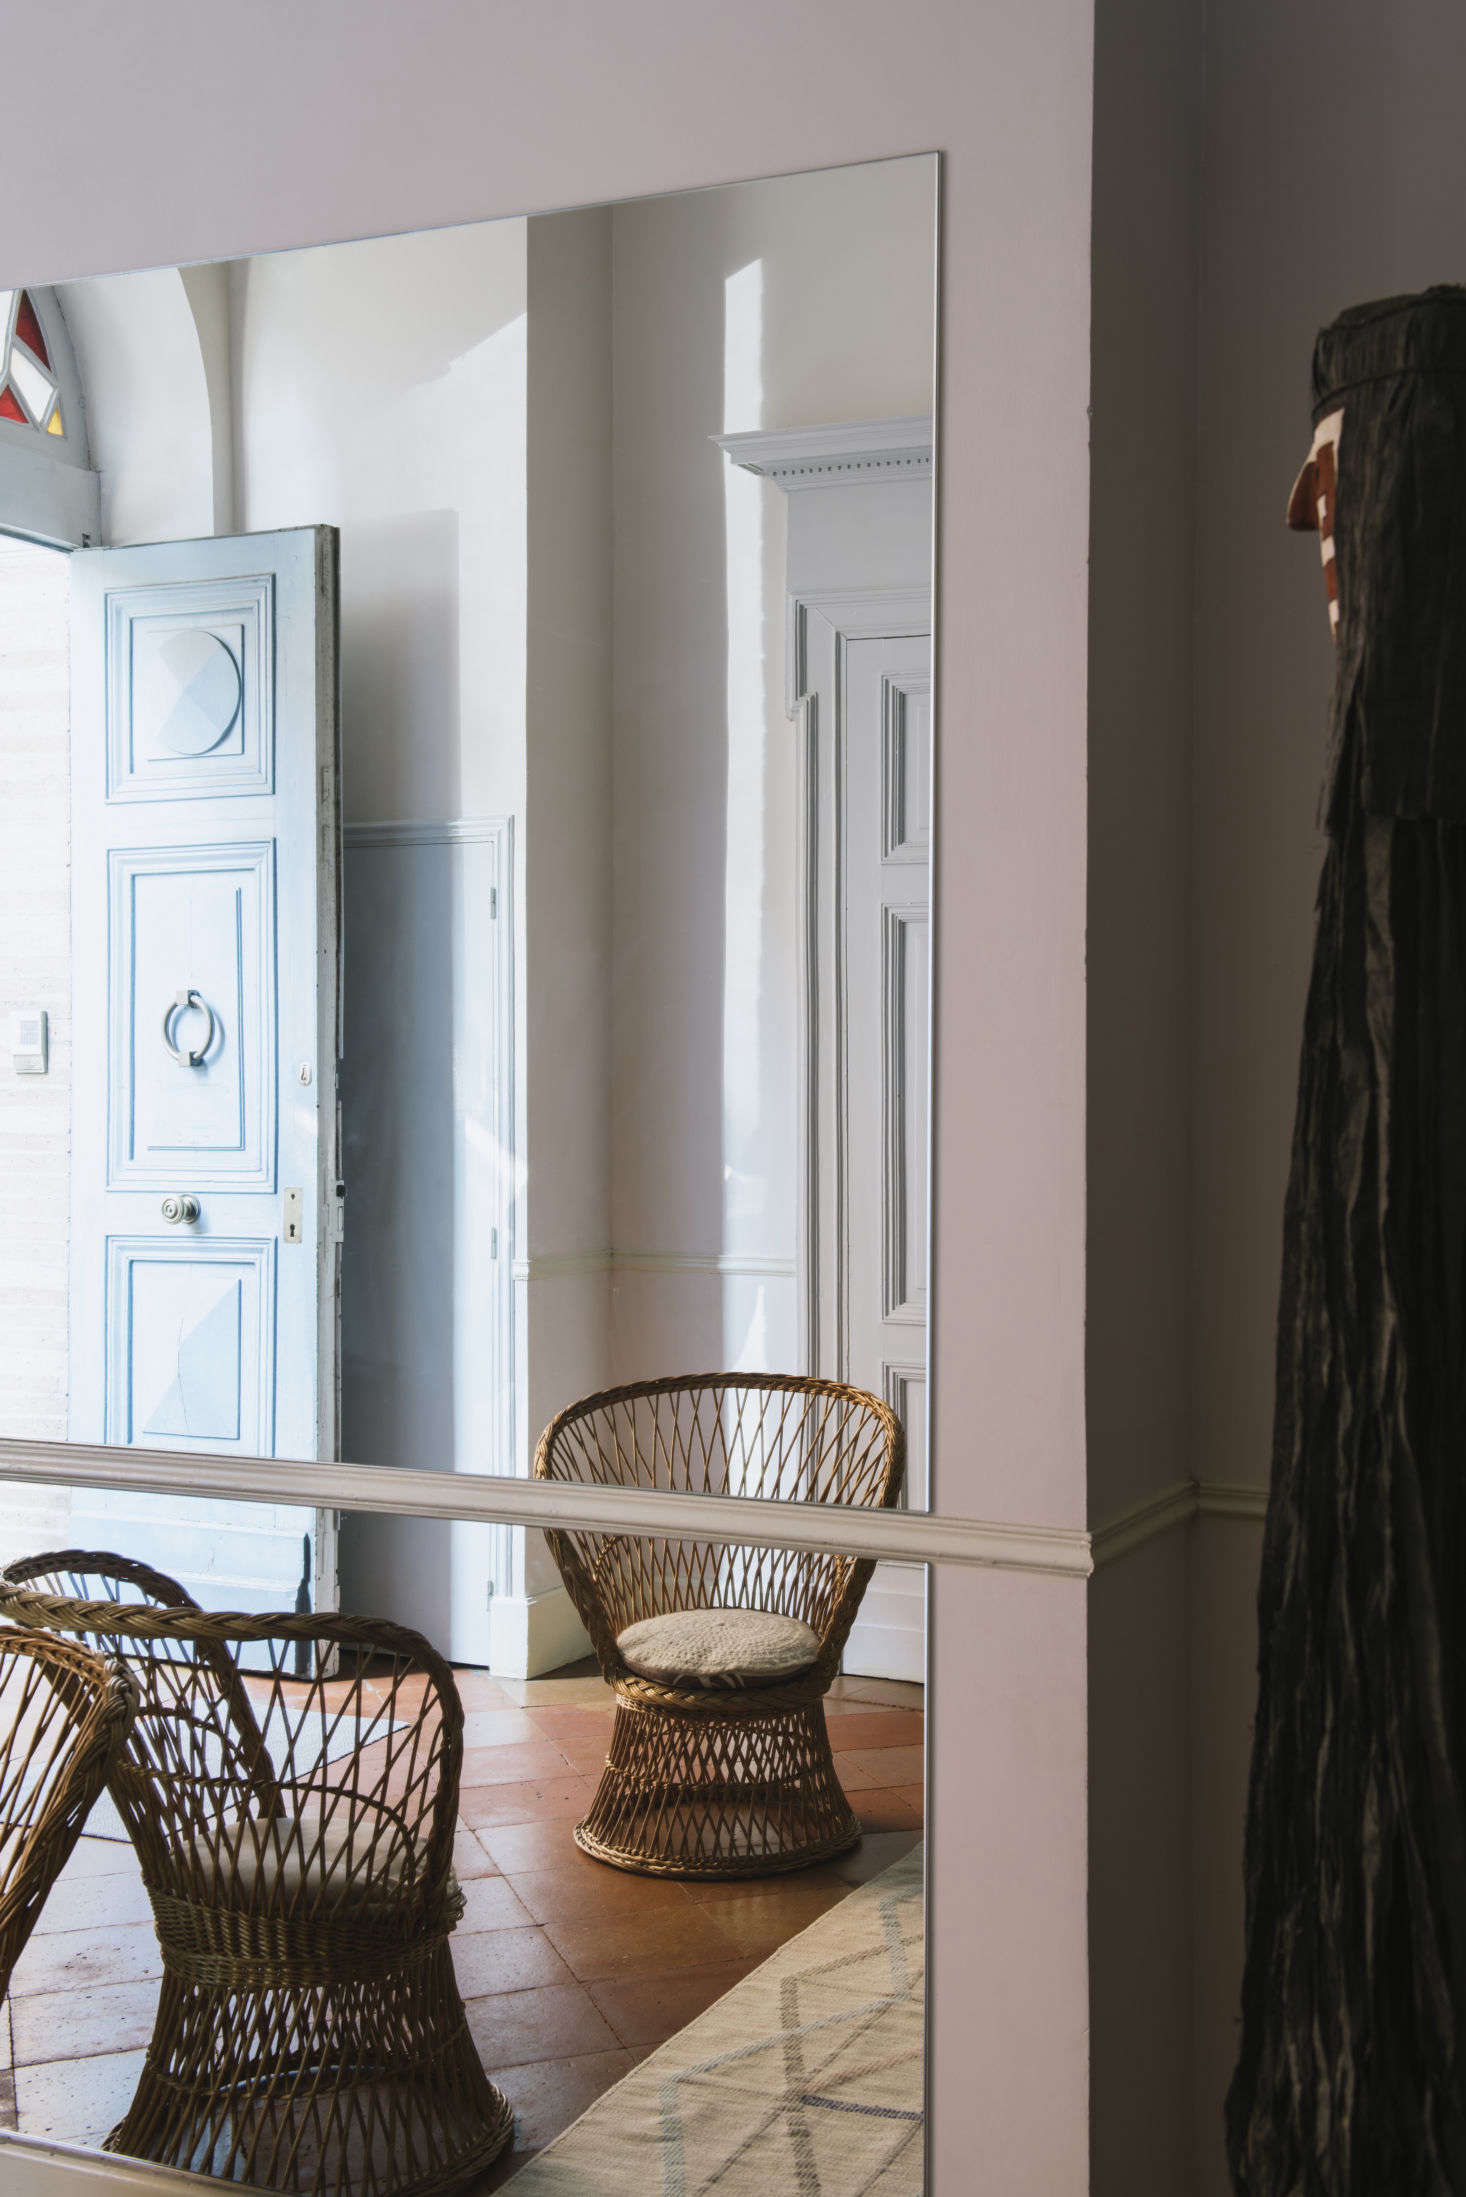 Stepping into the house, entrants are greeted by a cheerful blue door, a rattan chair, and panels of mirrors.